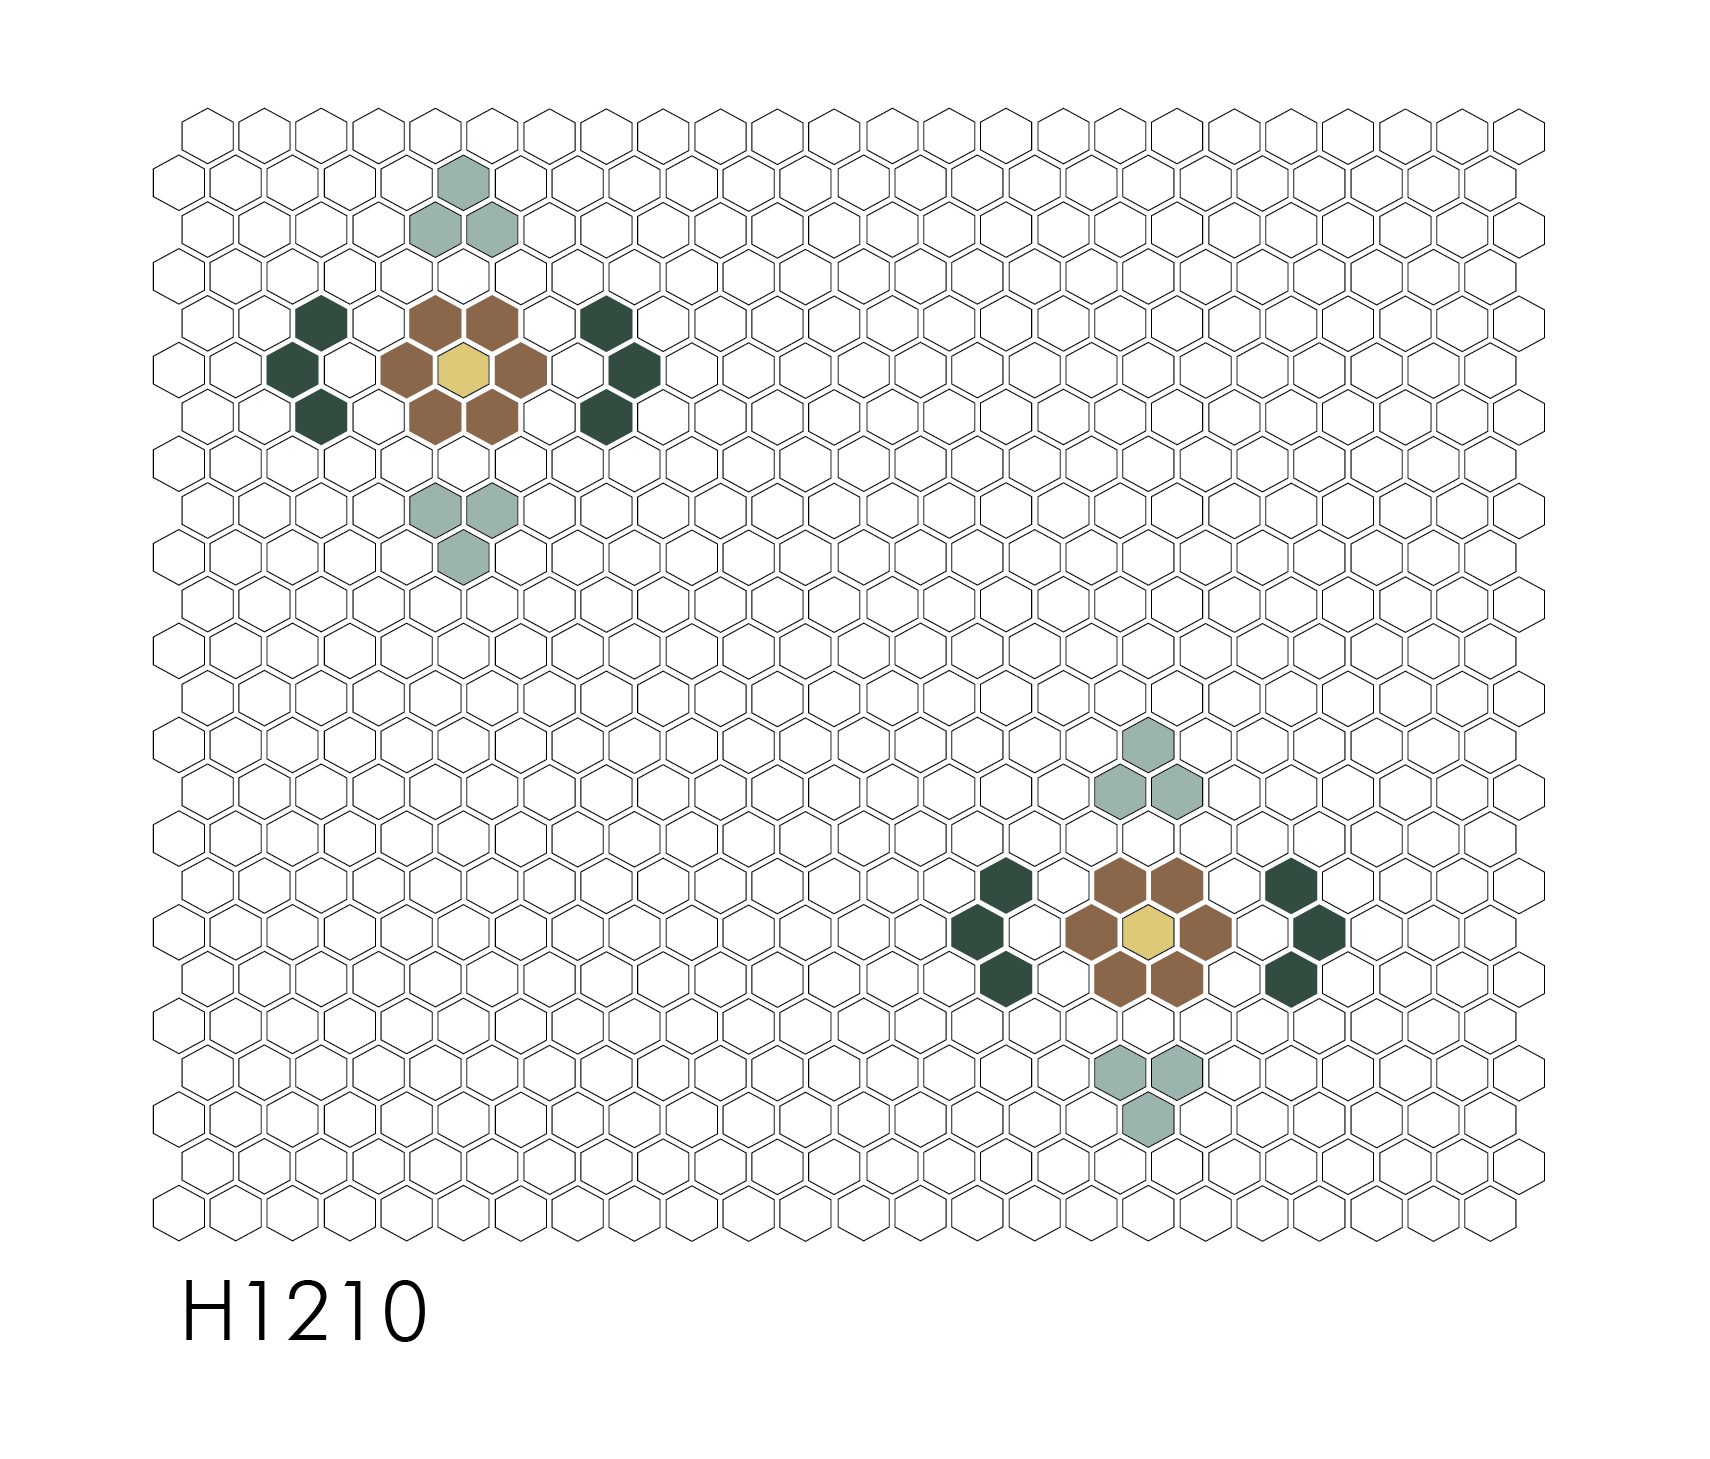 "H1210 Gardenside 1"" Hexagon Mosaic"